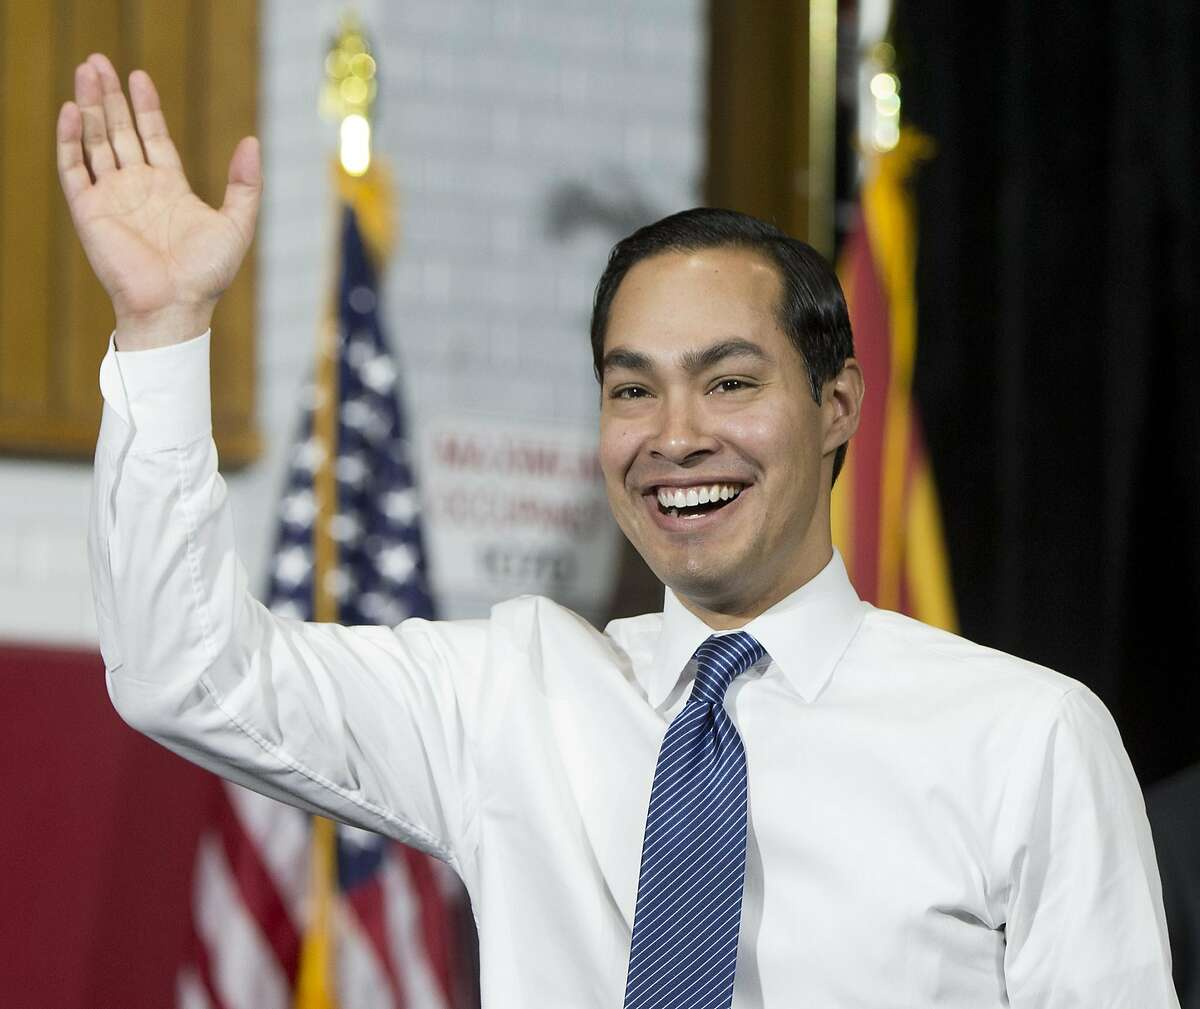 Secretary of Housing and Urban Development Julian Castro arrives to introduce President Barack Obama at Central High School, Thursday, Jan. 8, 2015, in Phoenix, about the recovering housing sector. (AP Photo/Carolyn Kaster)